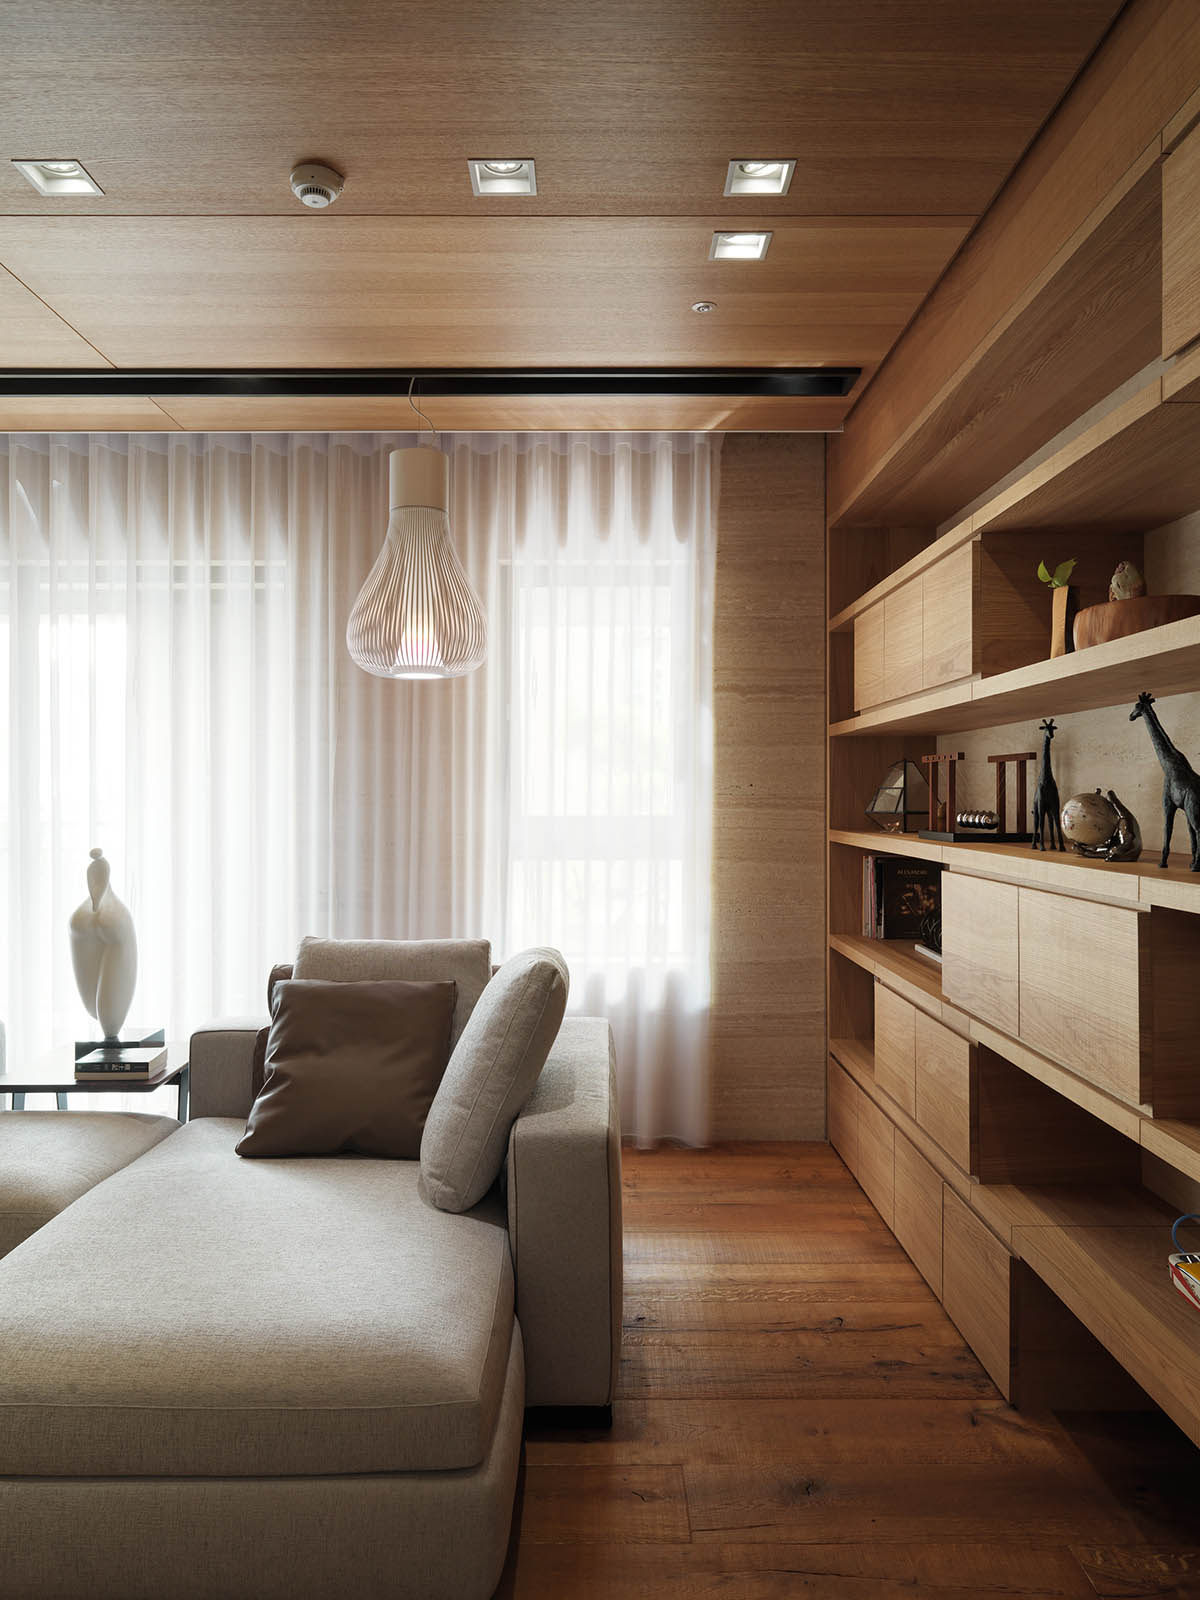 Cool Light Fixture - 4 homes with design focused on beautiful wood elements